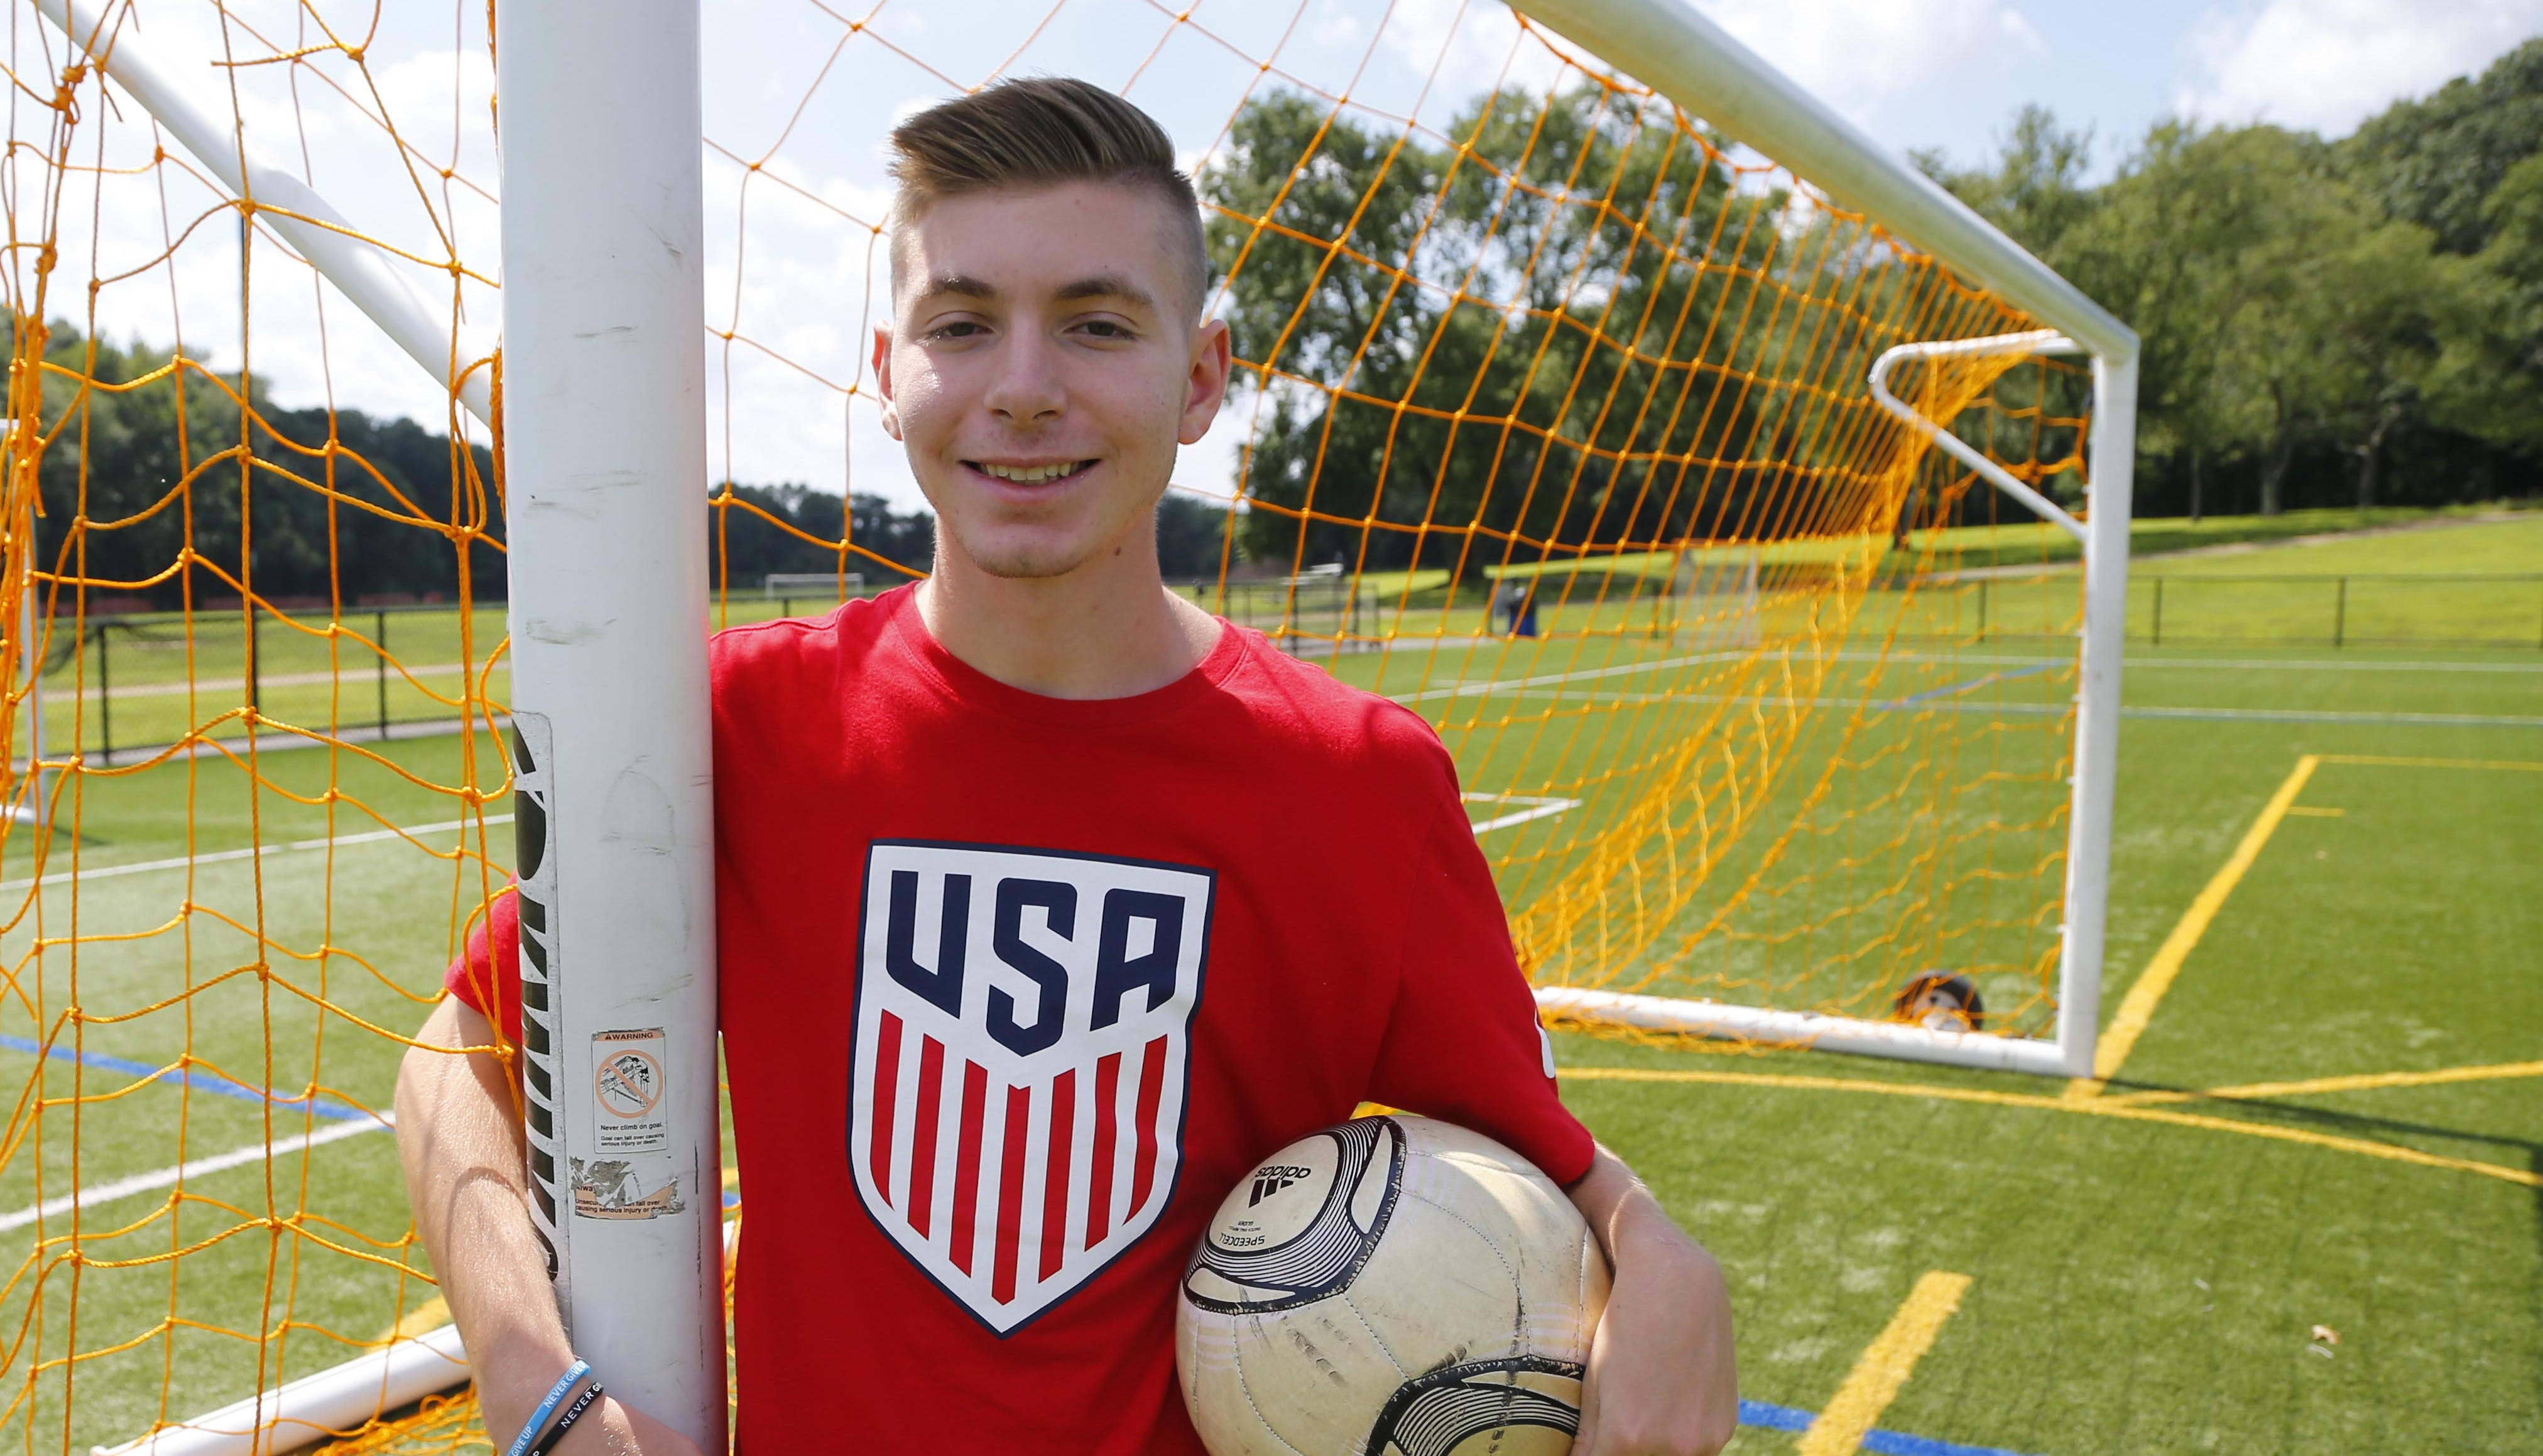 Jake Kaplan, an 18-year-old Marlboro resident who plays on the U.S. Paralympic soccer team.